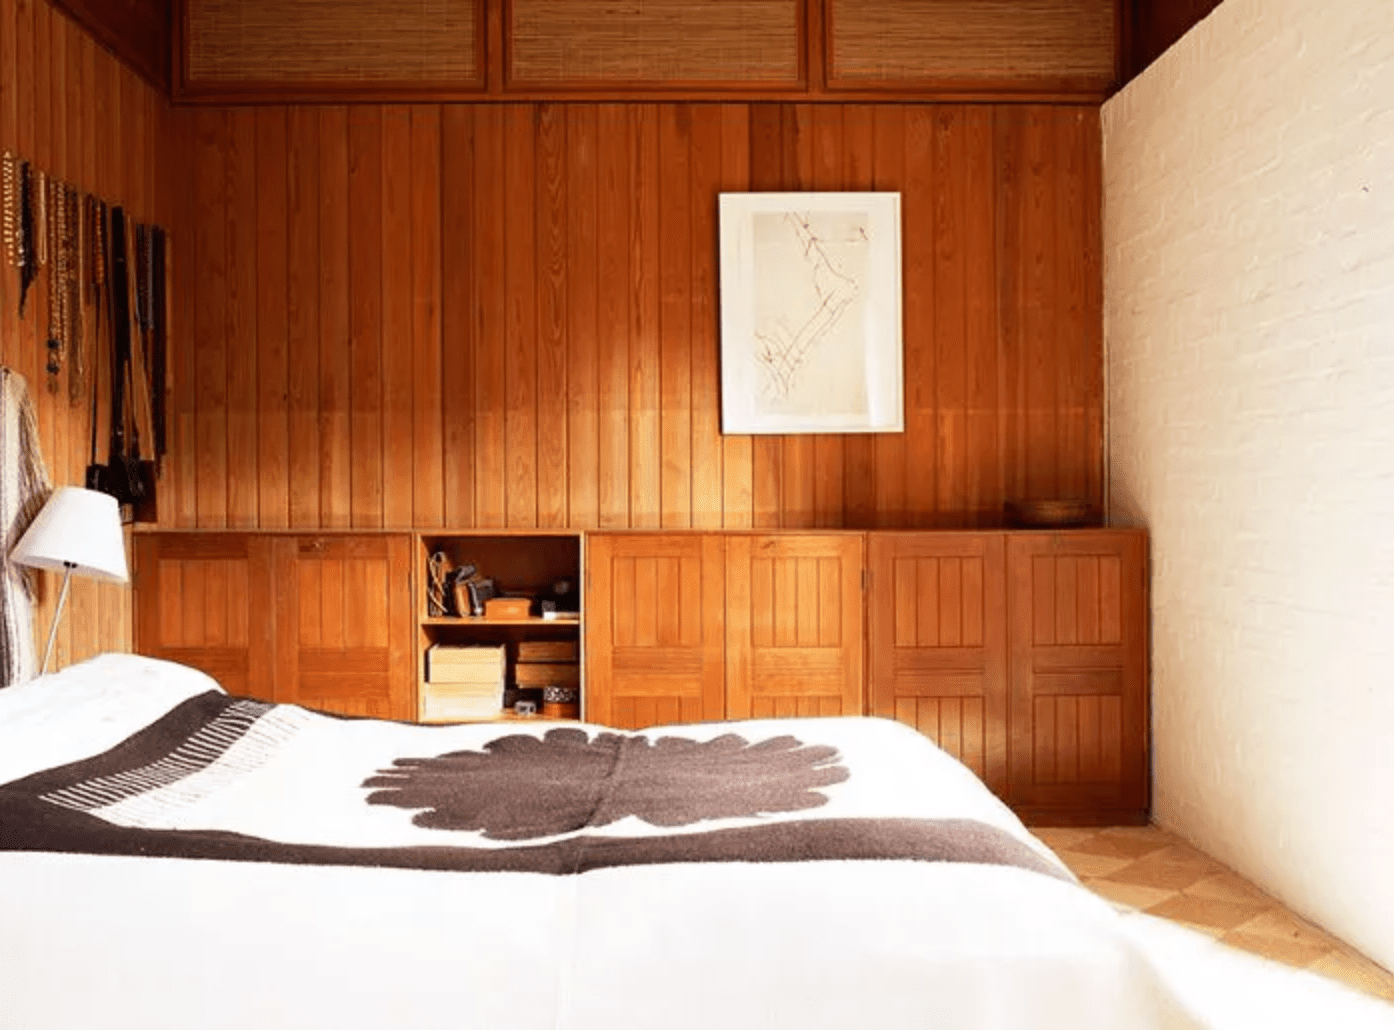 Dim lighting and wood paneled walls in a sparsely decorated bedroom